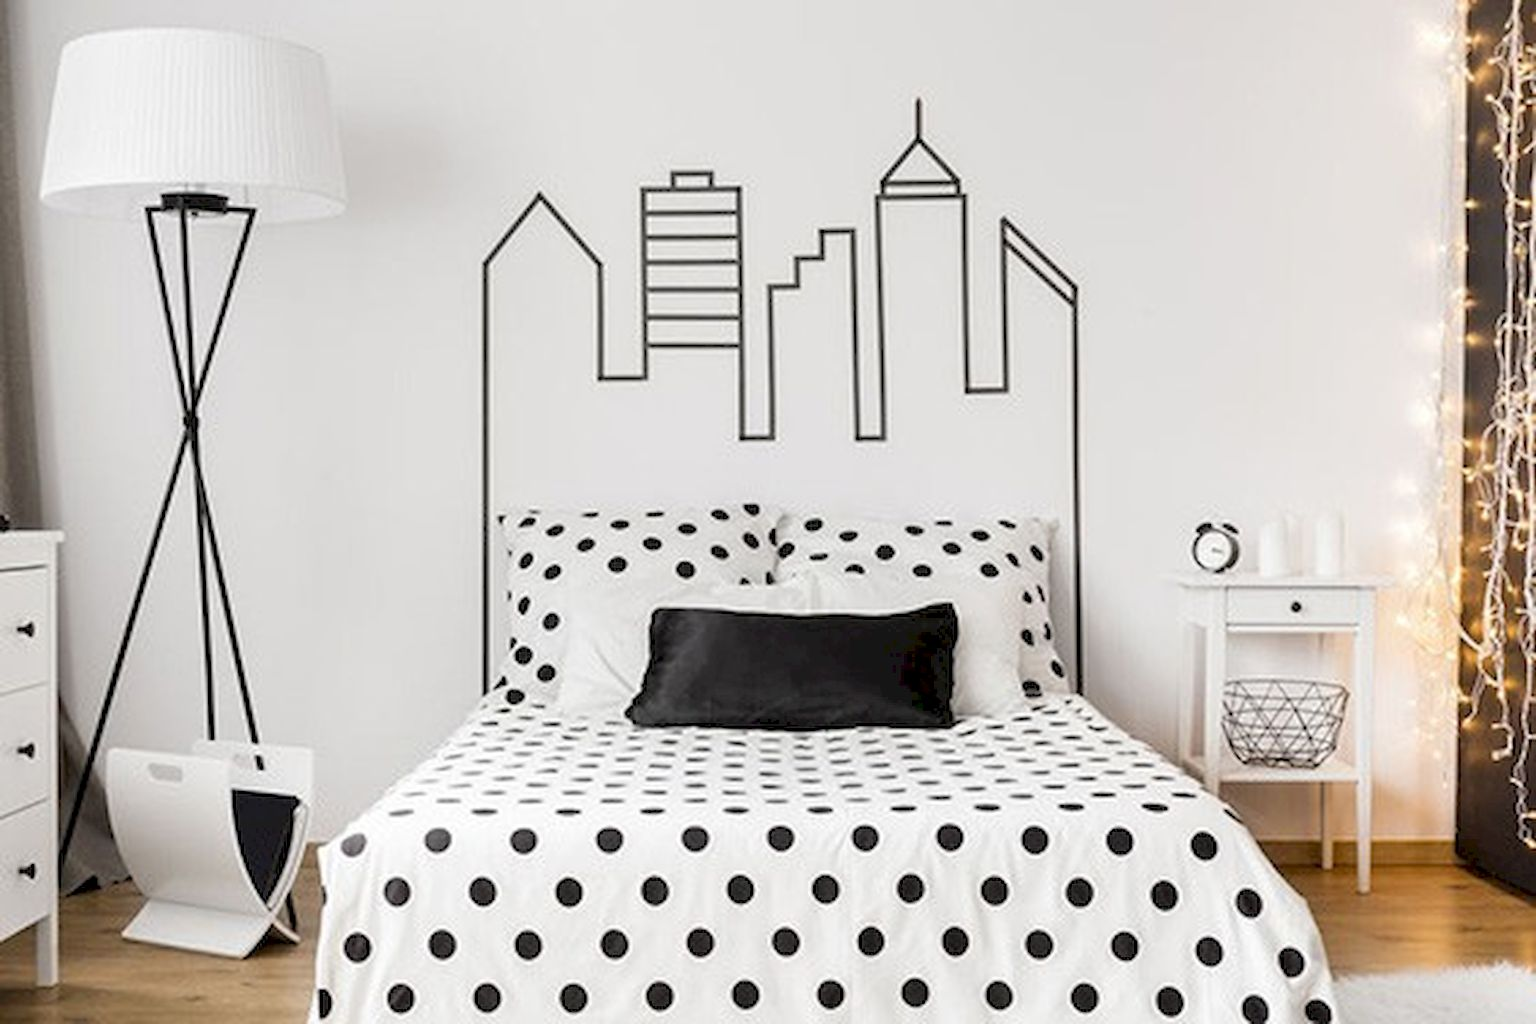 https://elonahome.com/wp-content/uploads/2018/10/Most-Wanted-White-Bedroom-Decorating-Ideas-in-Classy-Finish-Part-15.jpg